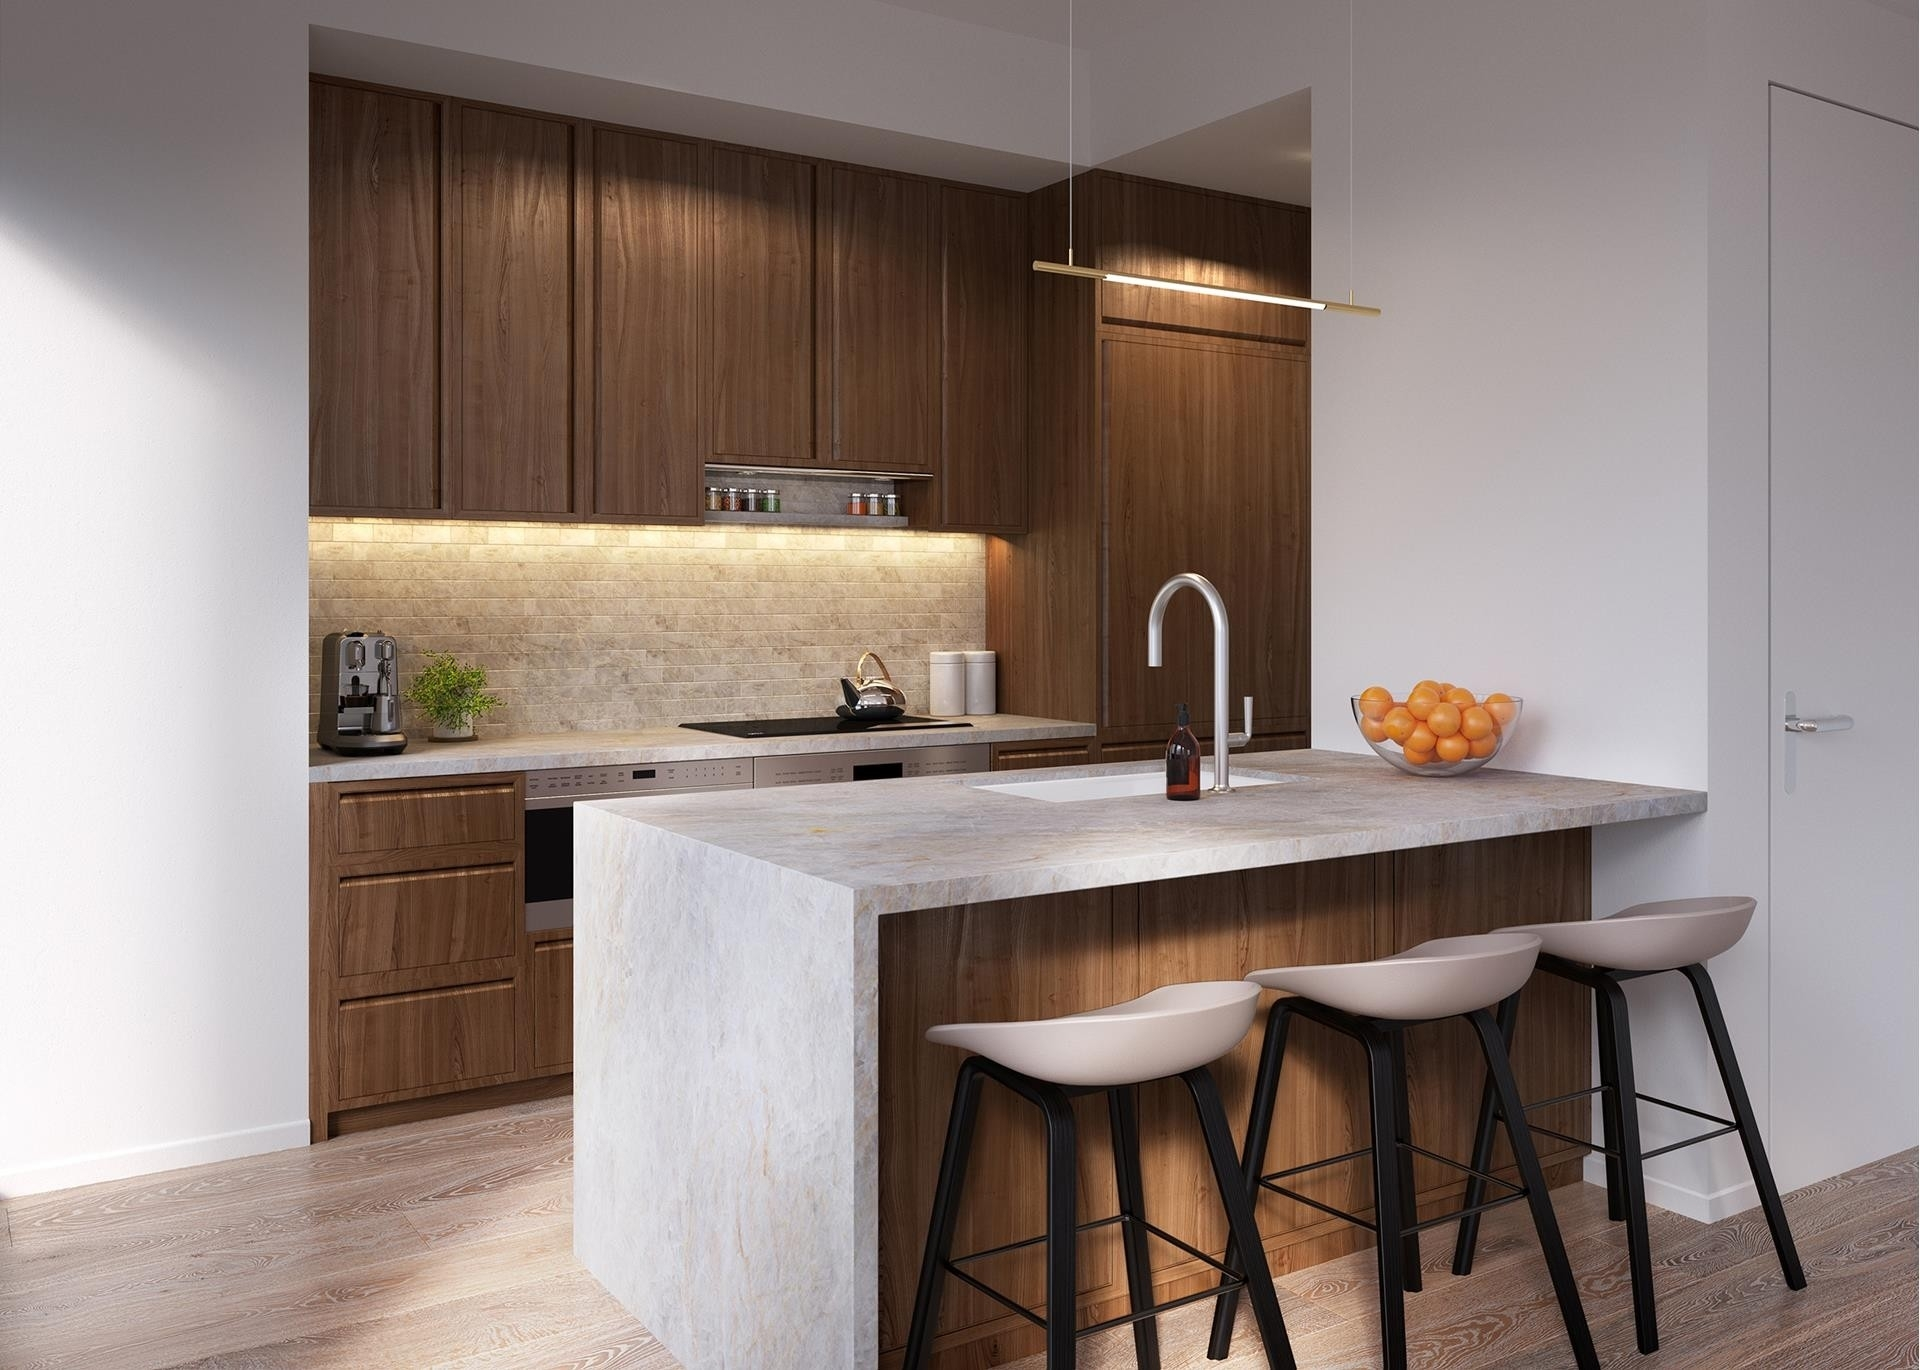 3. Condominiums for Sale at 30 East 31st St, 7A NoMad, New York, NY 10016